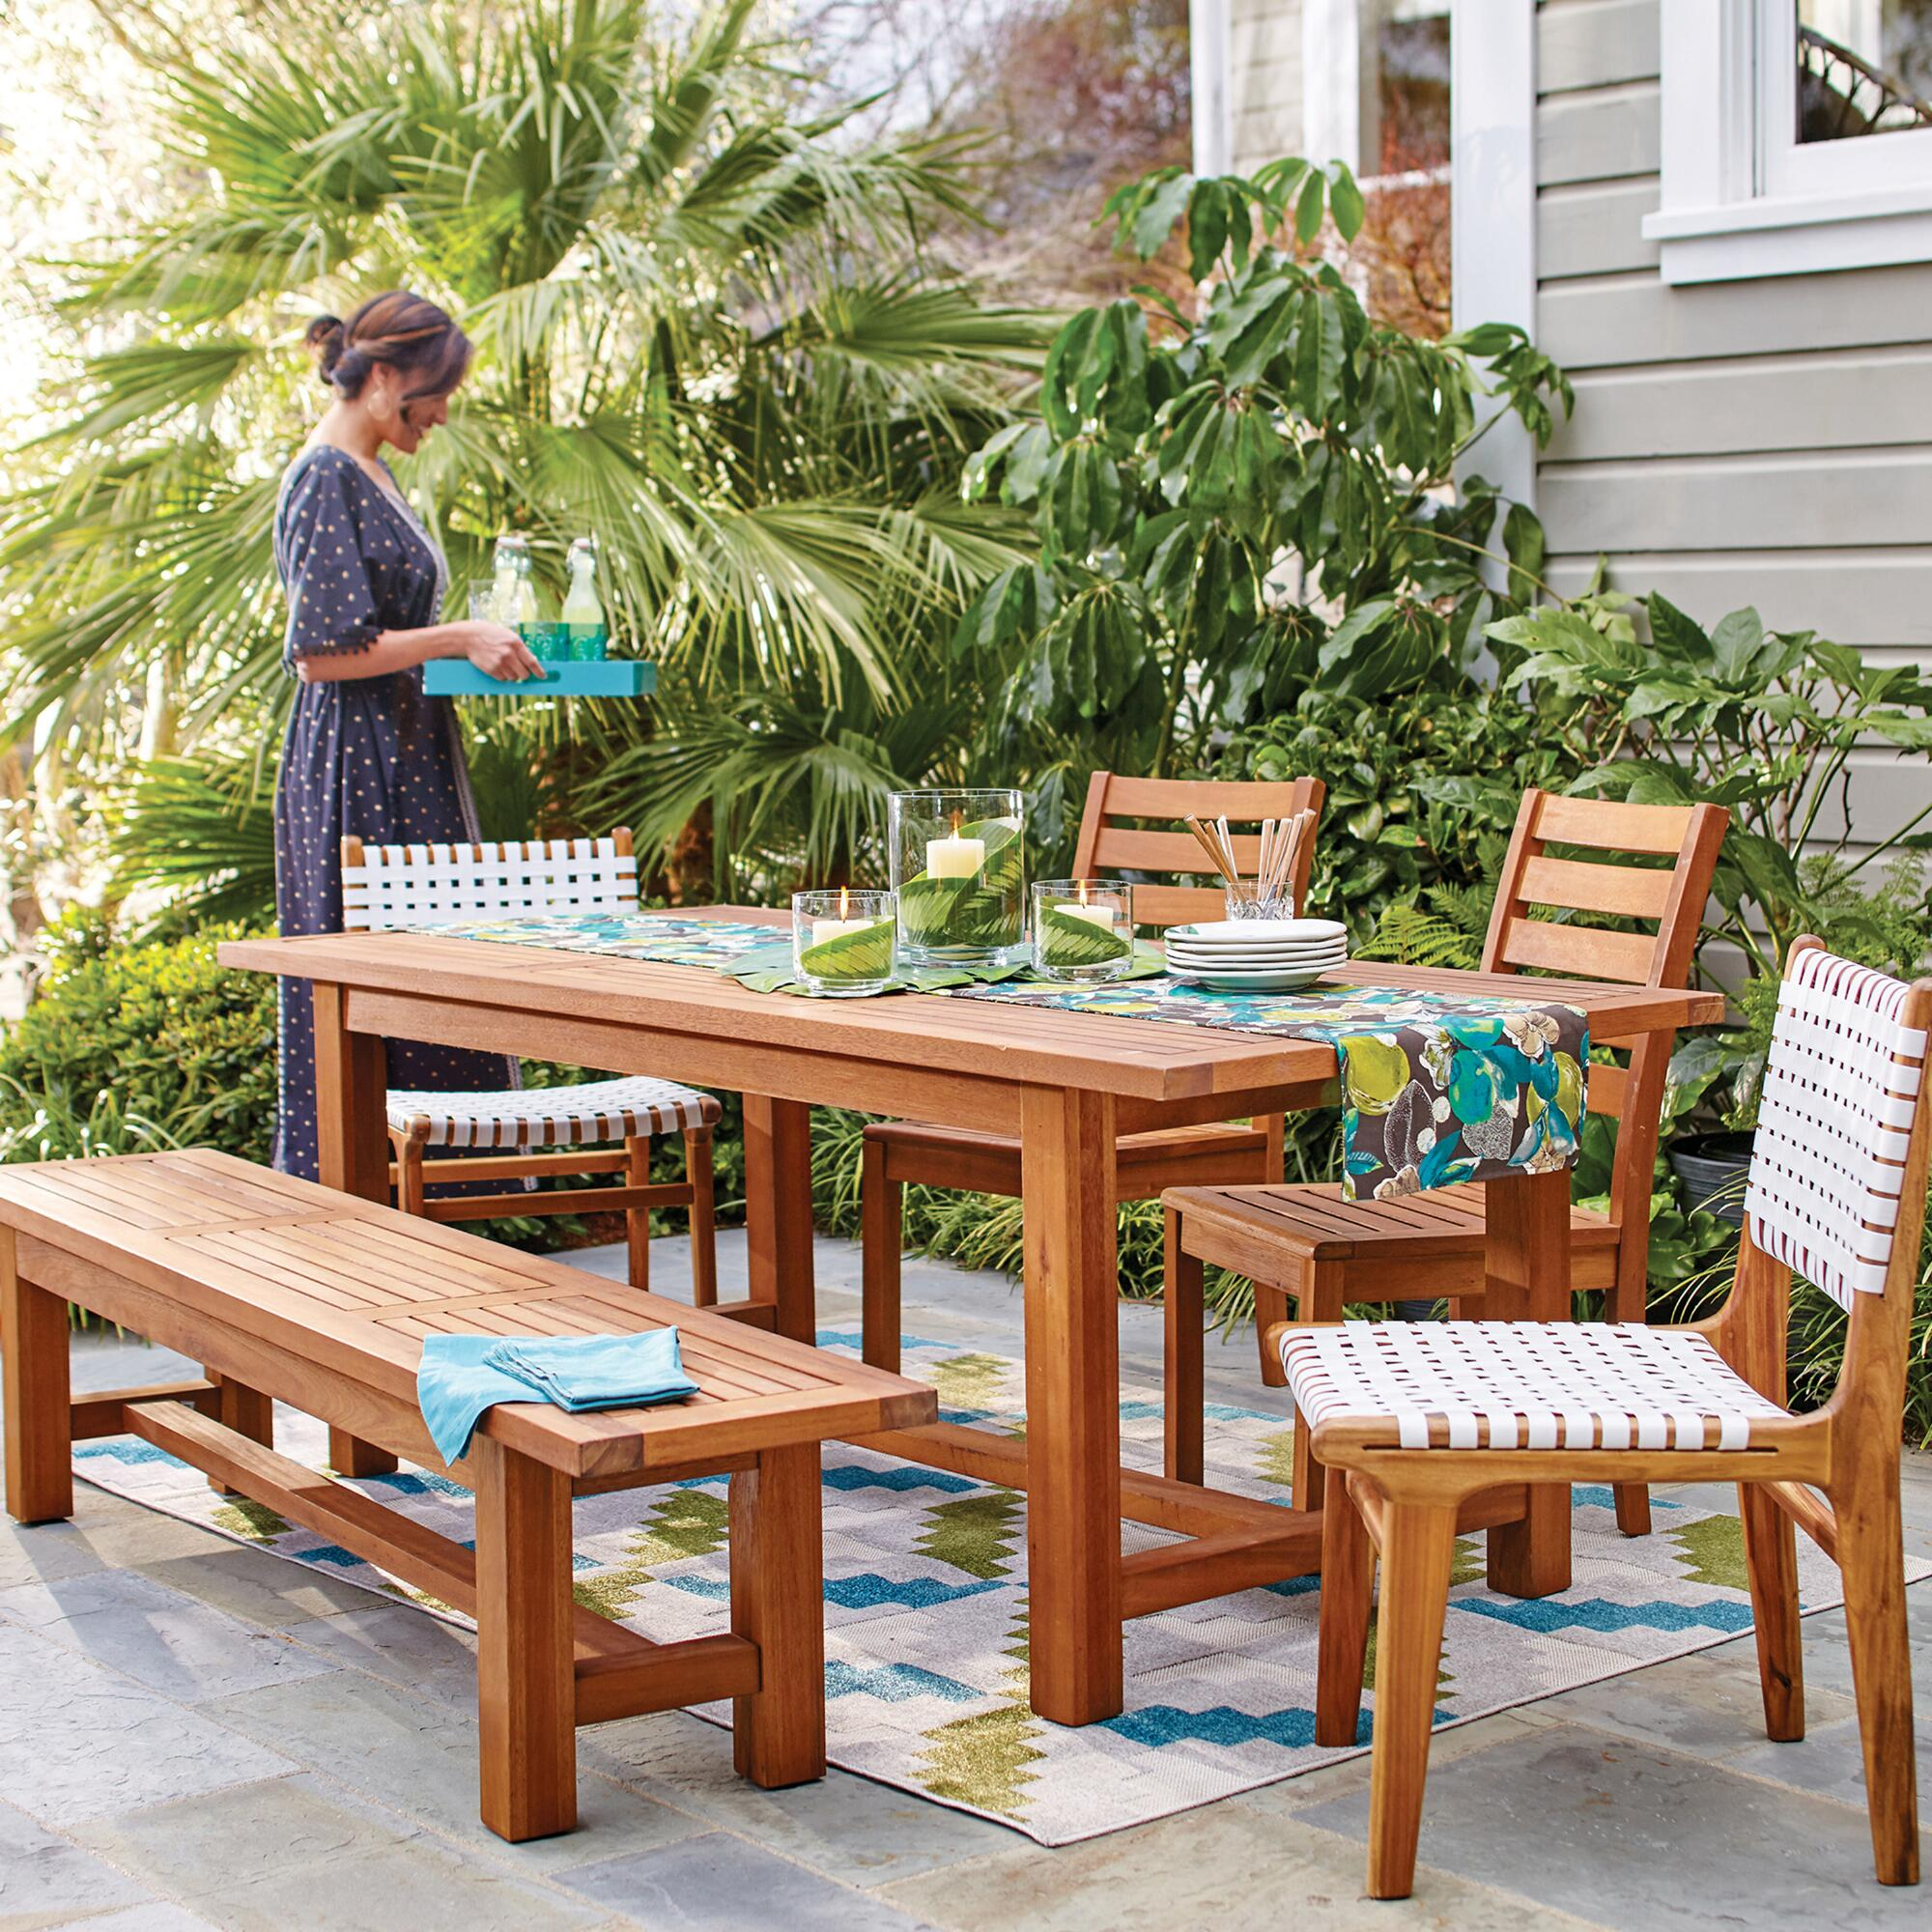 Outdoor Patio Furniture For Small Deck: Best Outdoor Furniture: 15 Picks For Any Budget